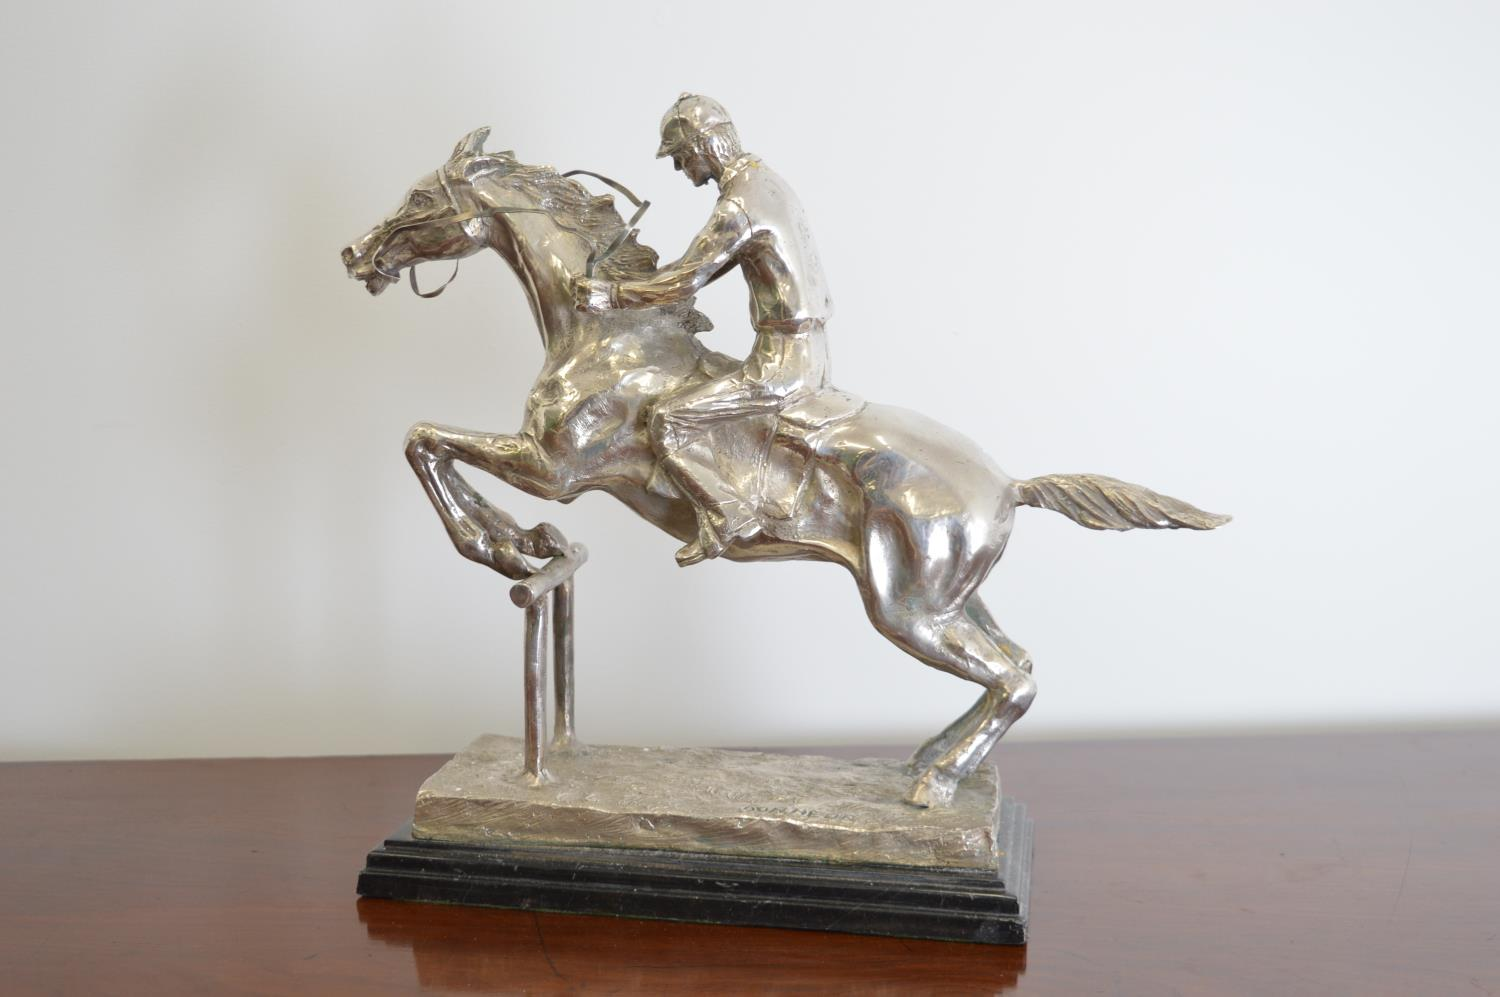 Silver plated model of a jumping horse and jockey